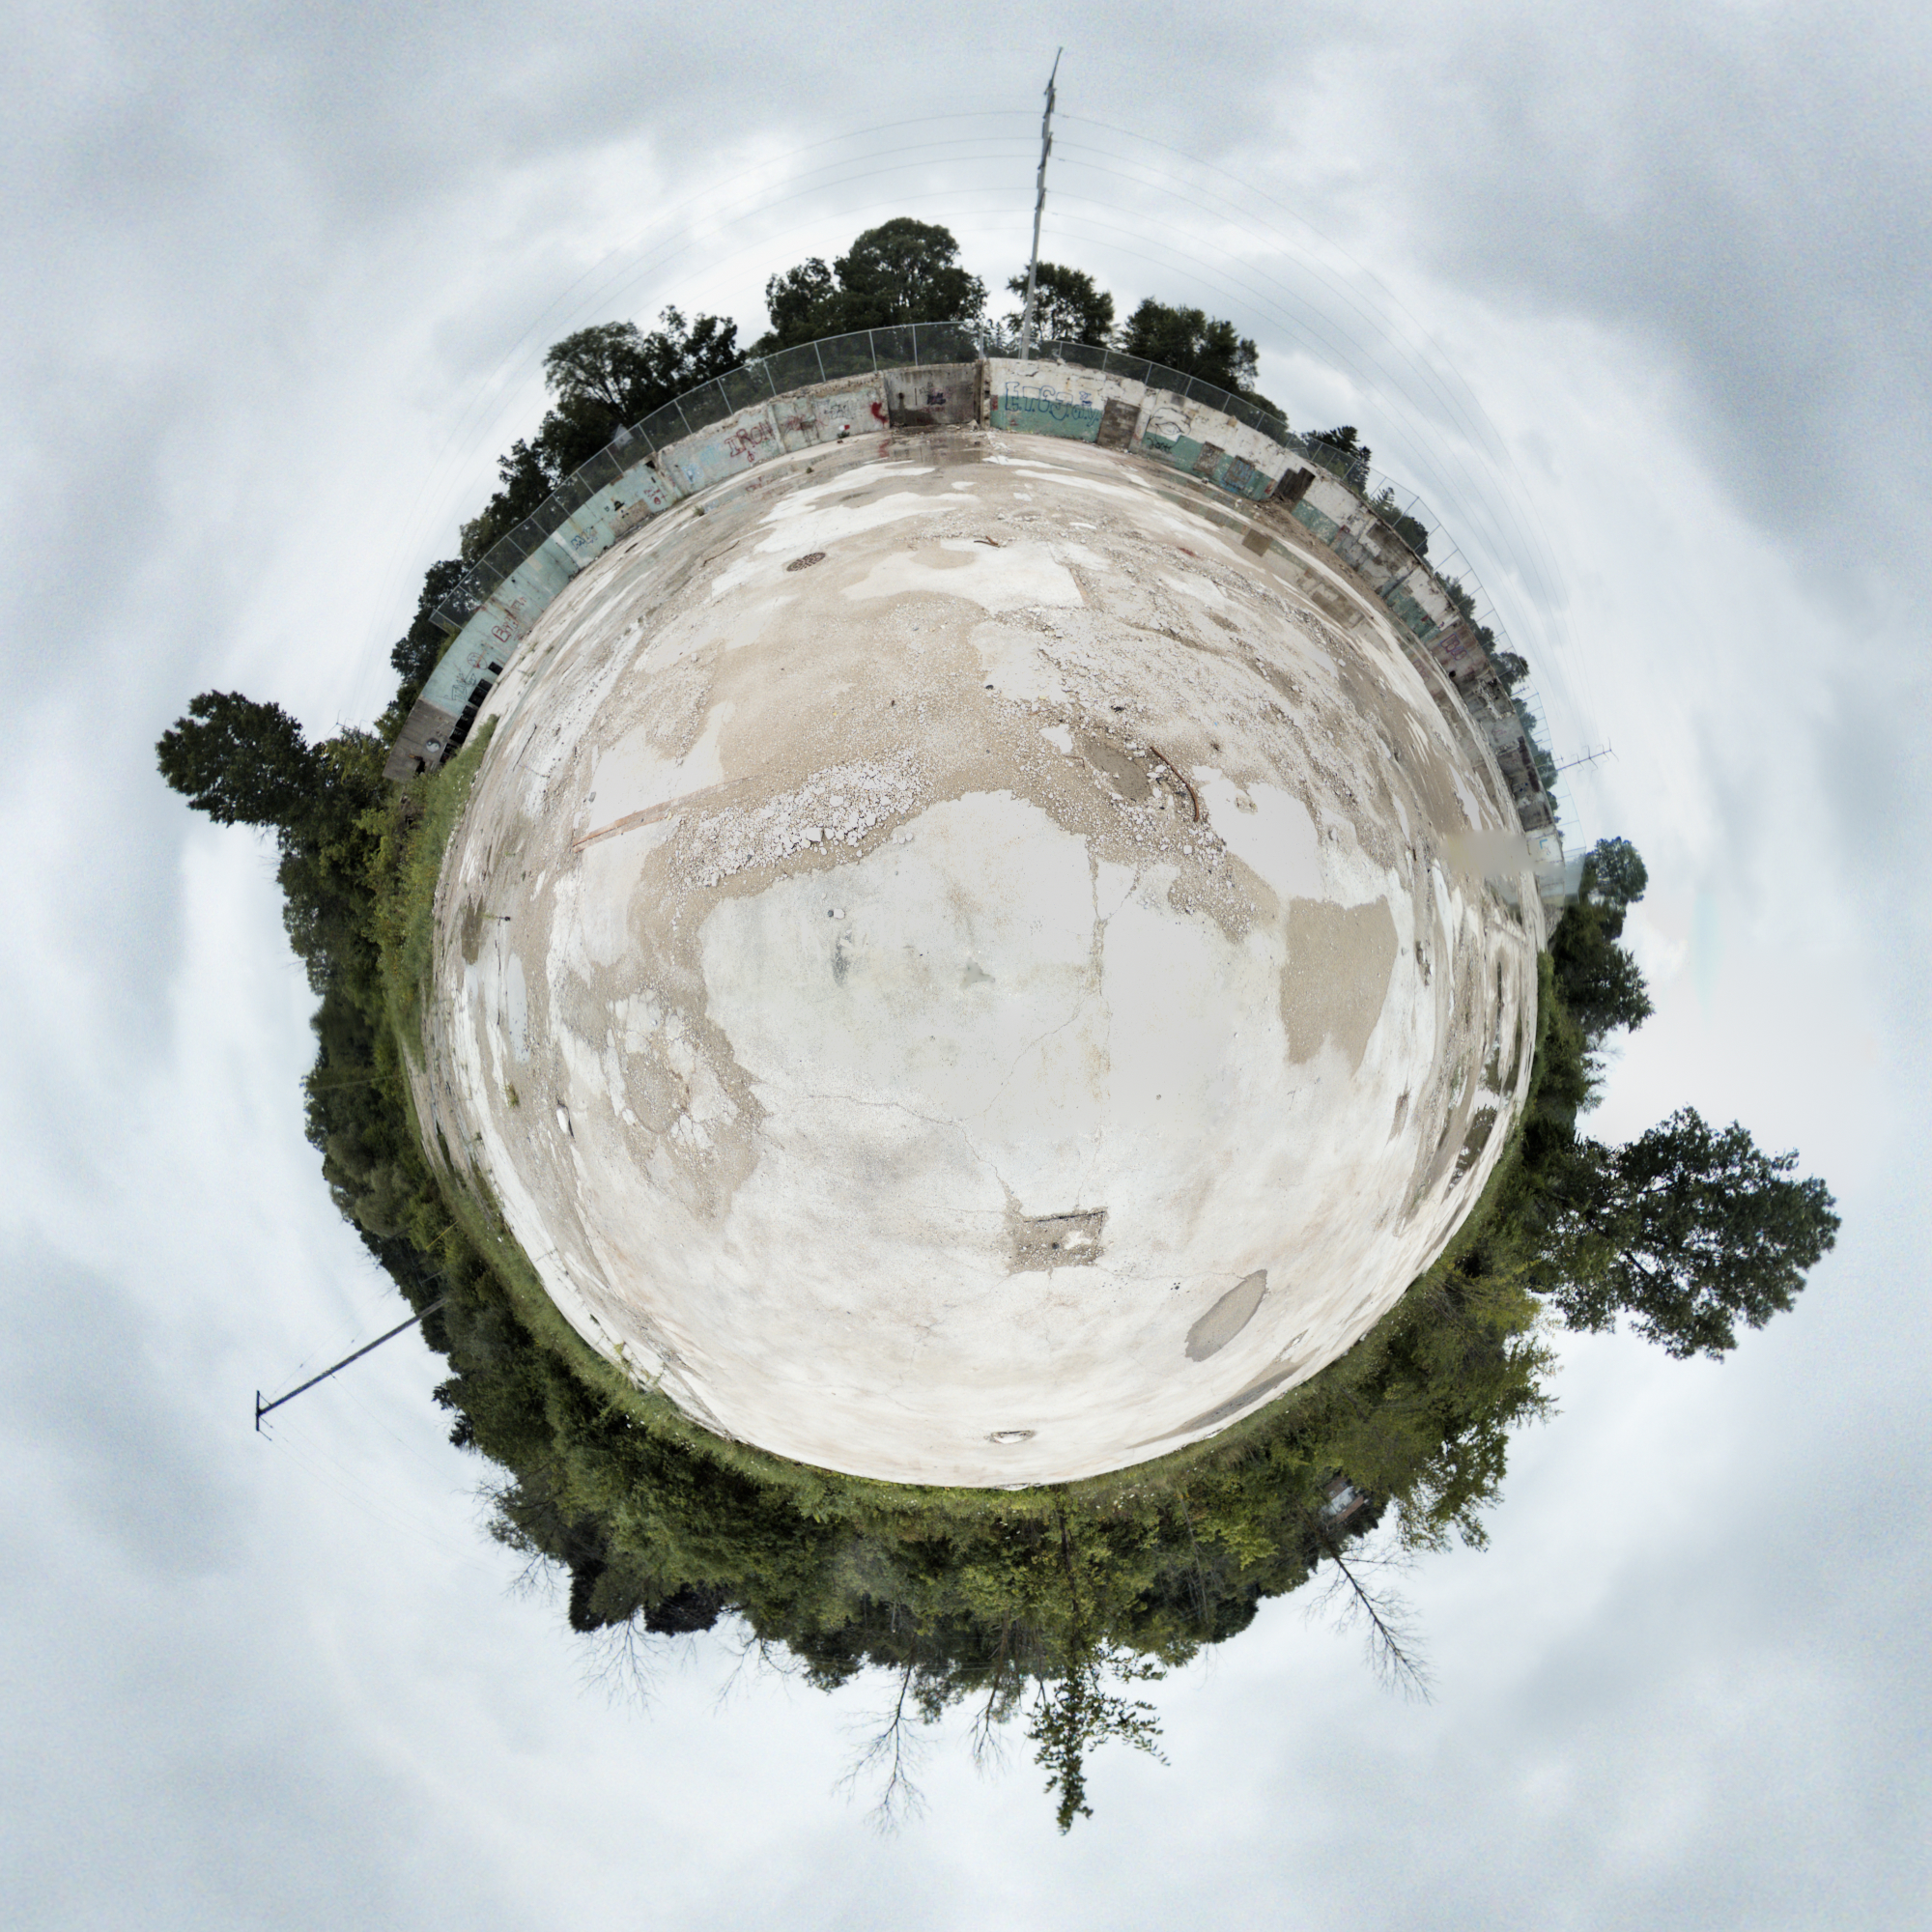 Pano 78 Featured Image